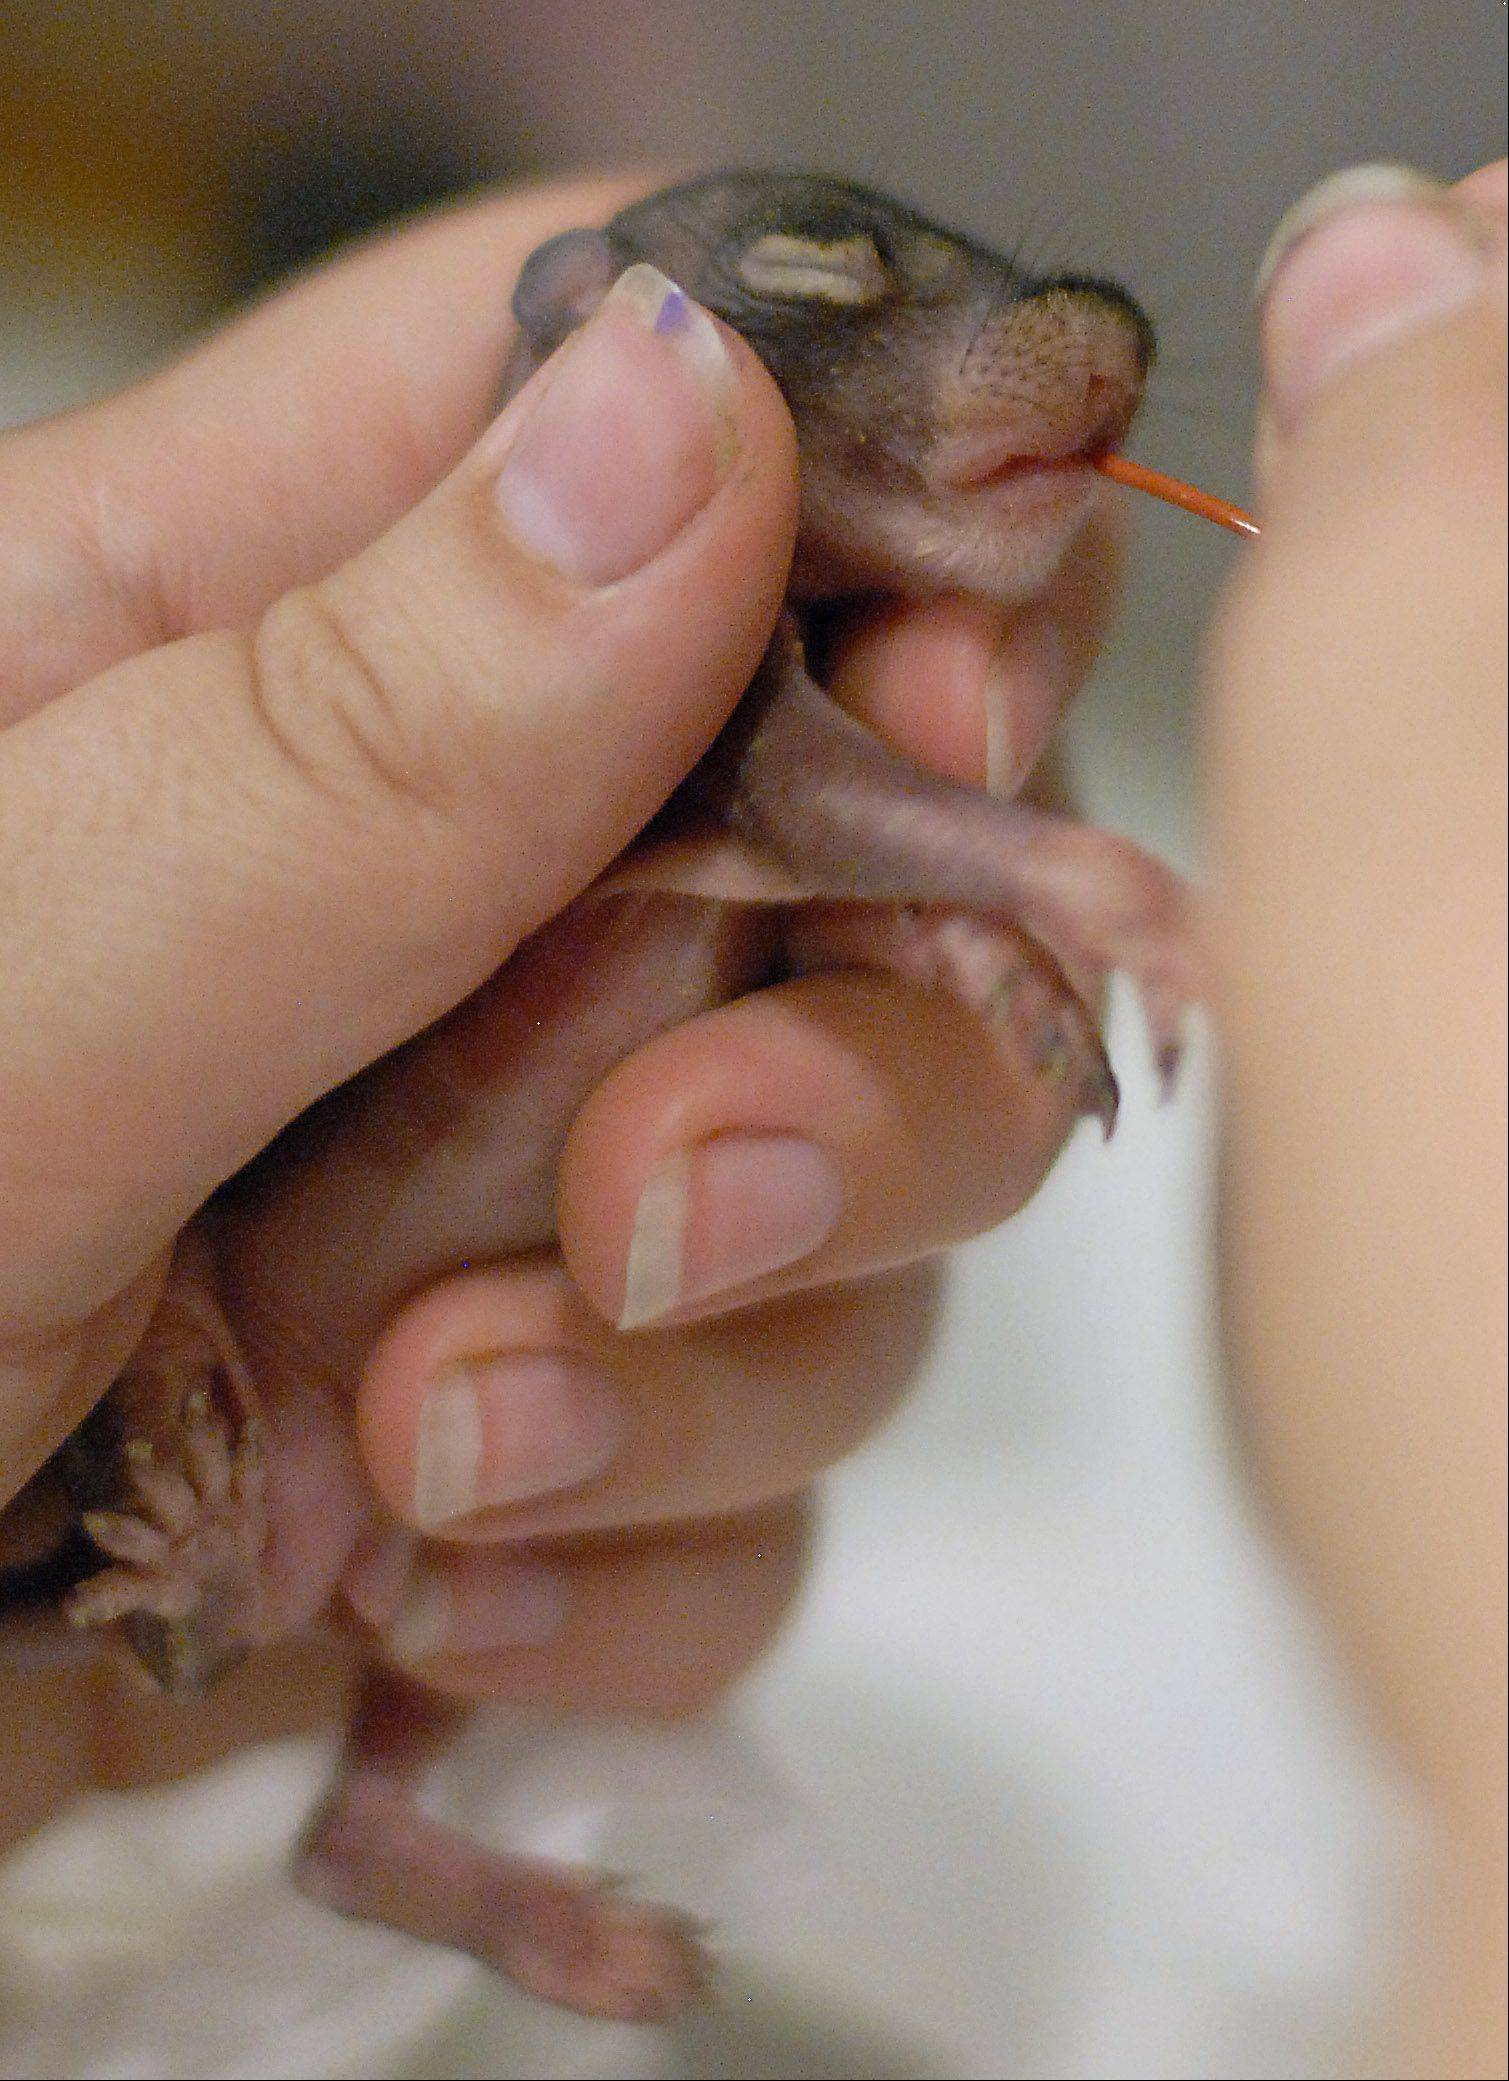 A two-week-old baby squirrel receives a special squirrel formula via a tiny tube and syringe. Currently there are about 30 infant squirrels at the center, many who came in after violent storms blew through and knocked them out of their tree nests.